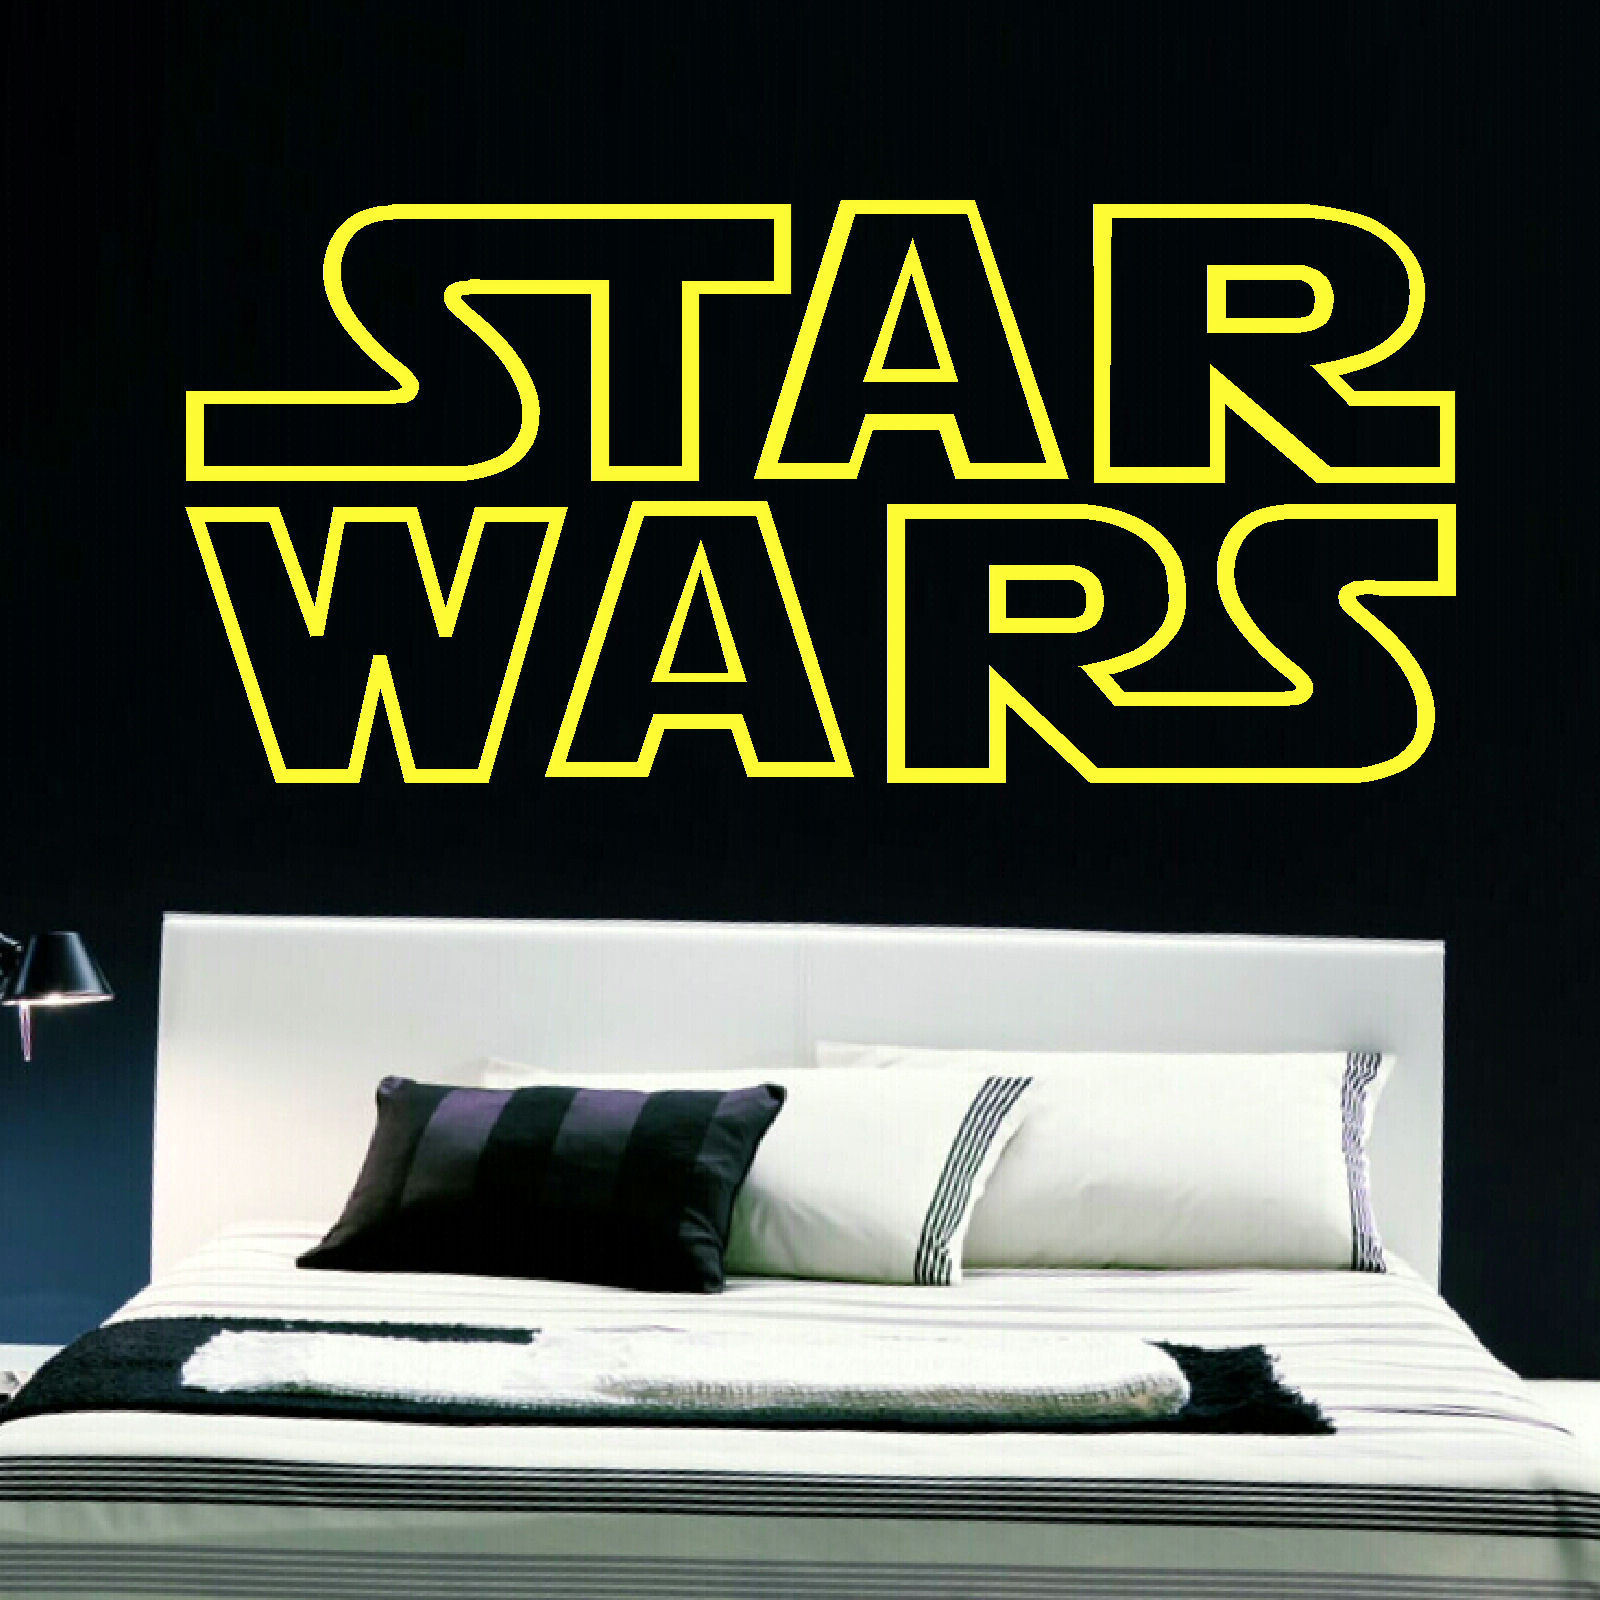 STAR WARS BEDROOM LOGO WALL STICKER IN QUALITY CUT MATT